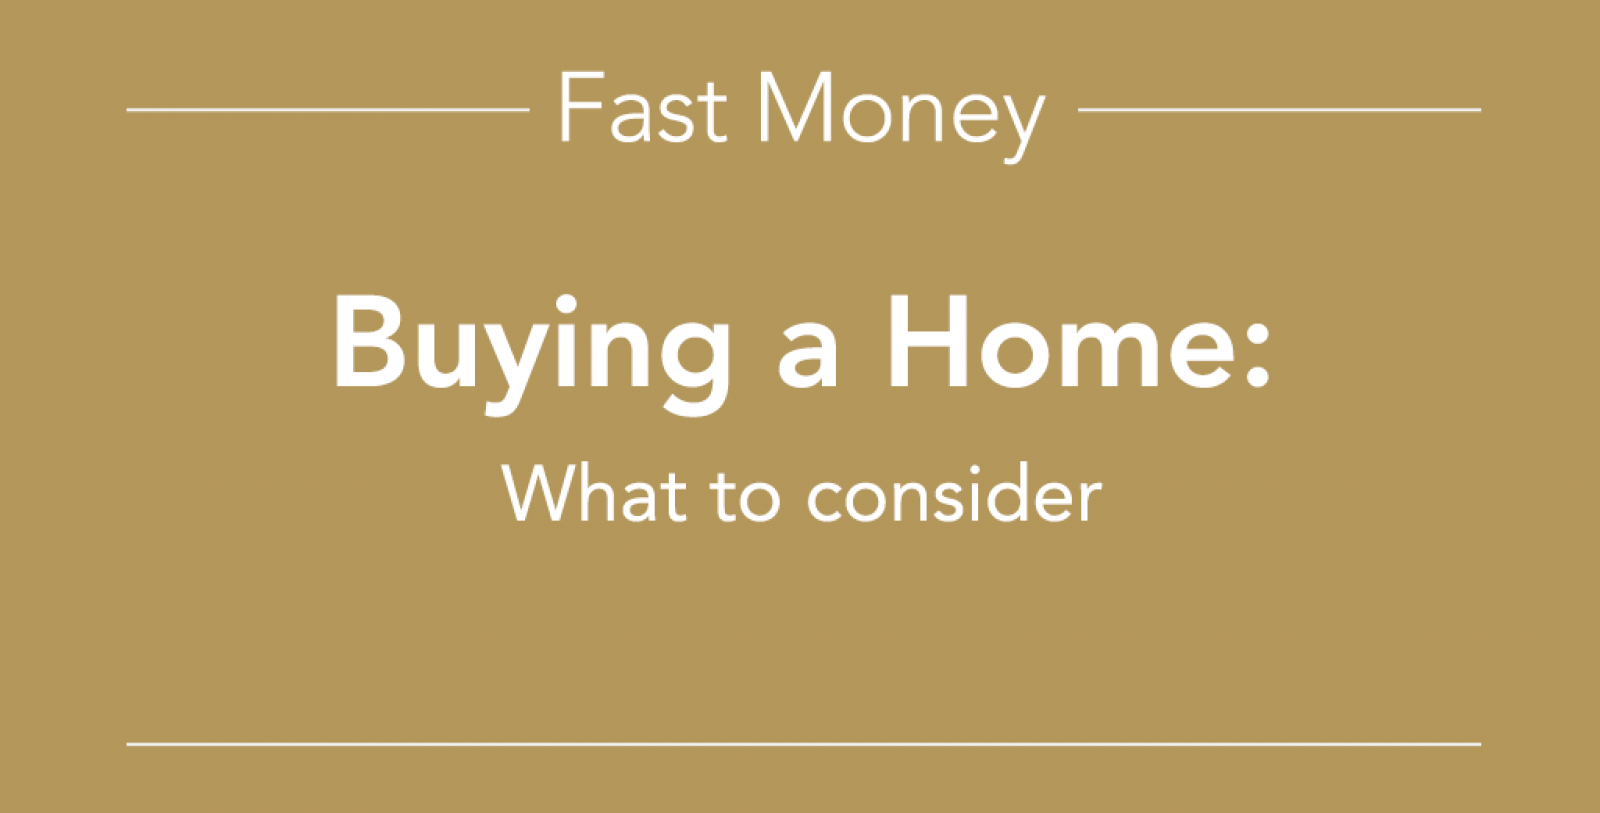 Fast Money Buying a Home